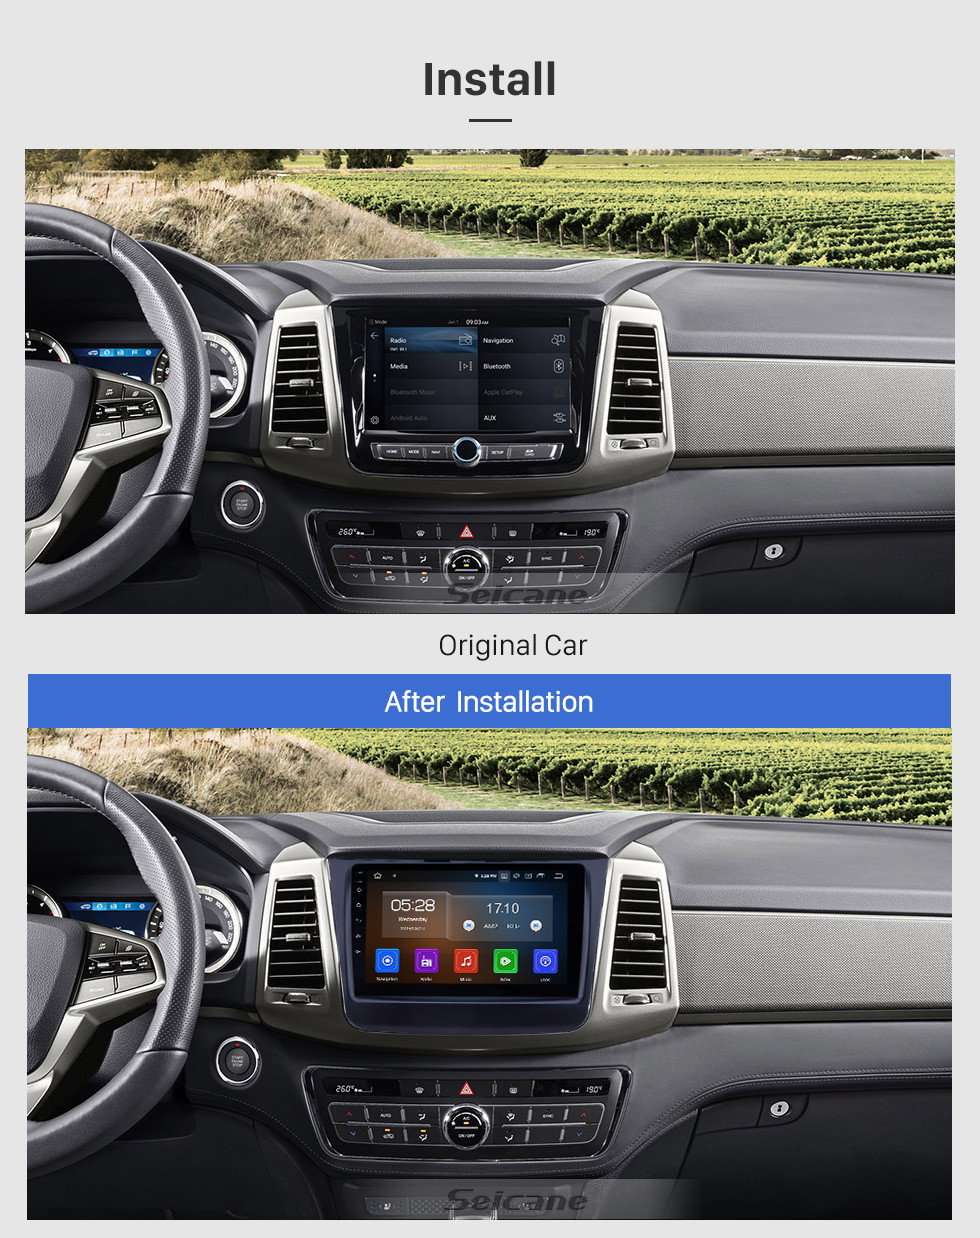 Seicane HD Touchscreen 2018 Ssang Yong Rexton Android 9.0 9 inch GPS Navigation Radio Bluetooth USB Carplay WIFI AUX support Steering Wheel Control